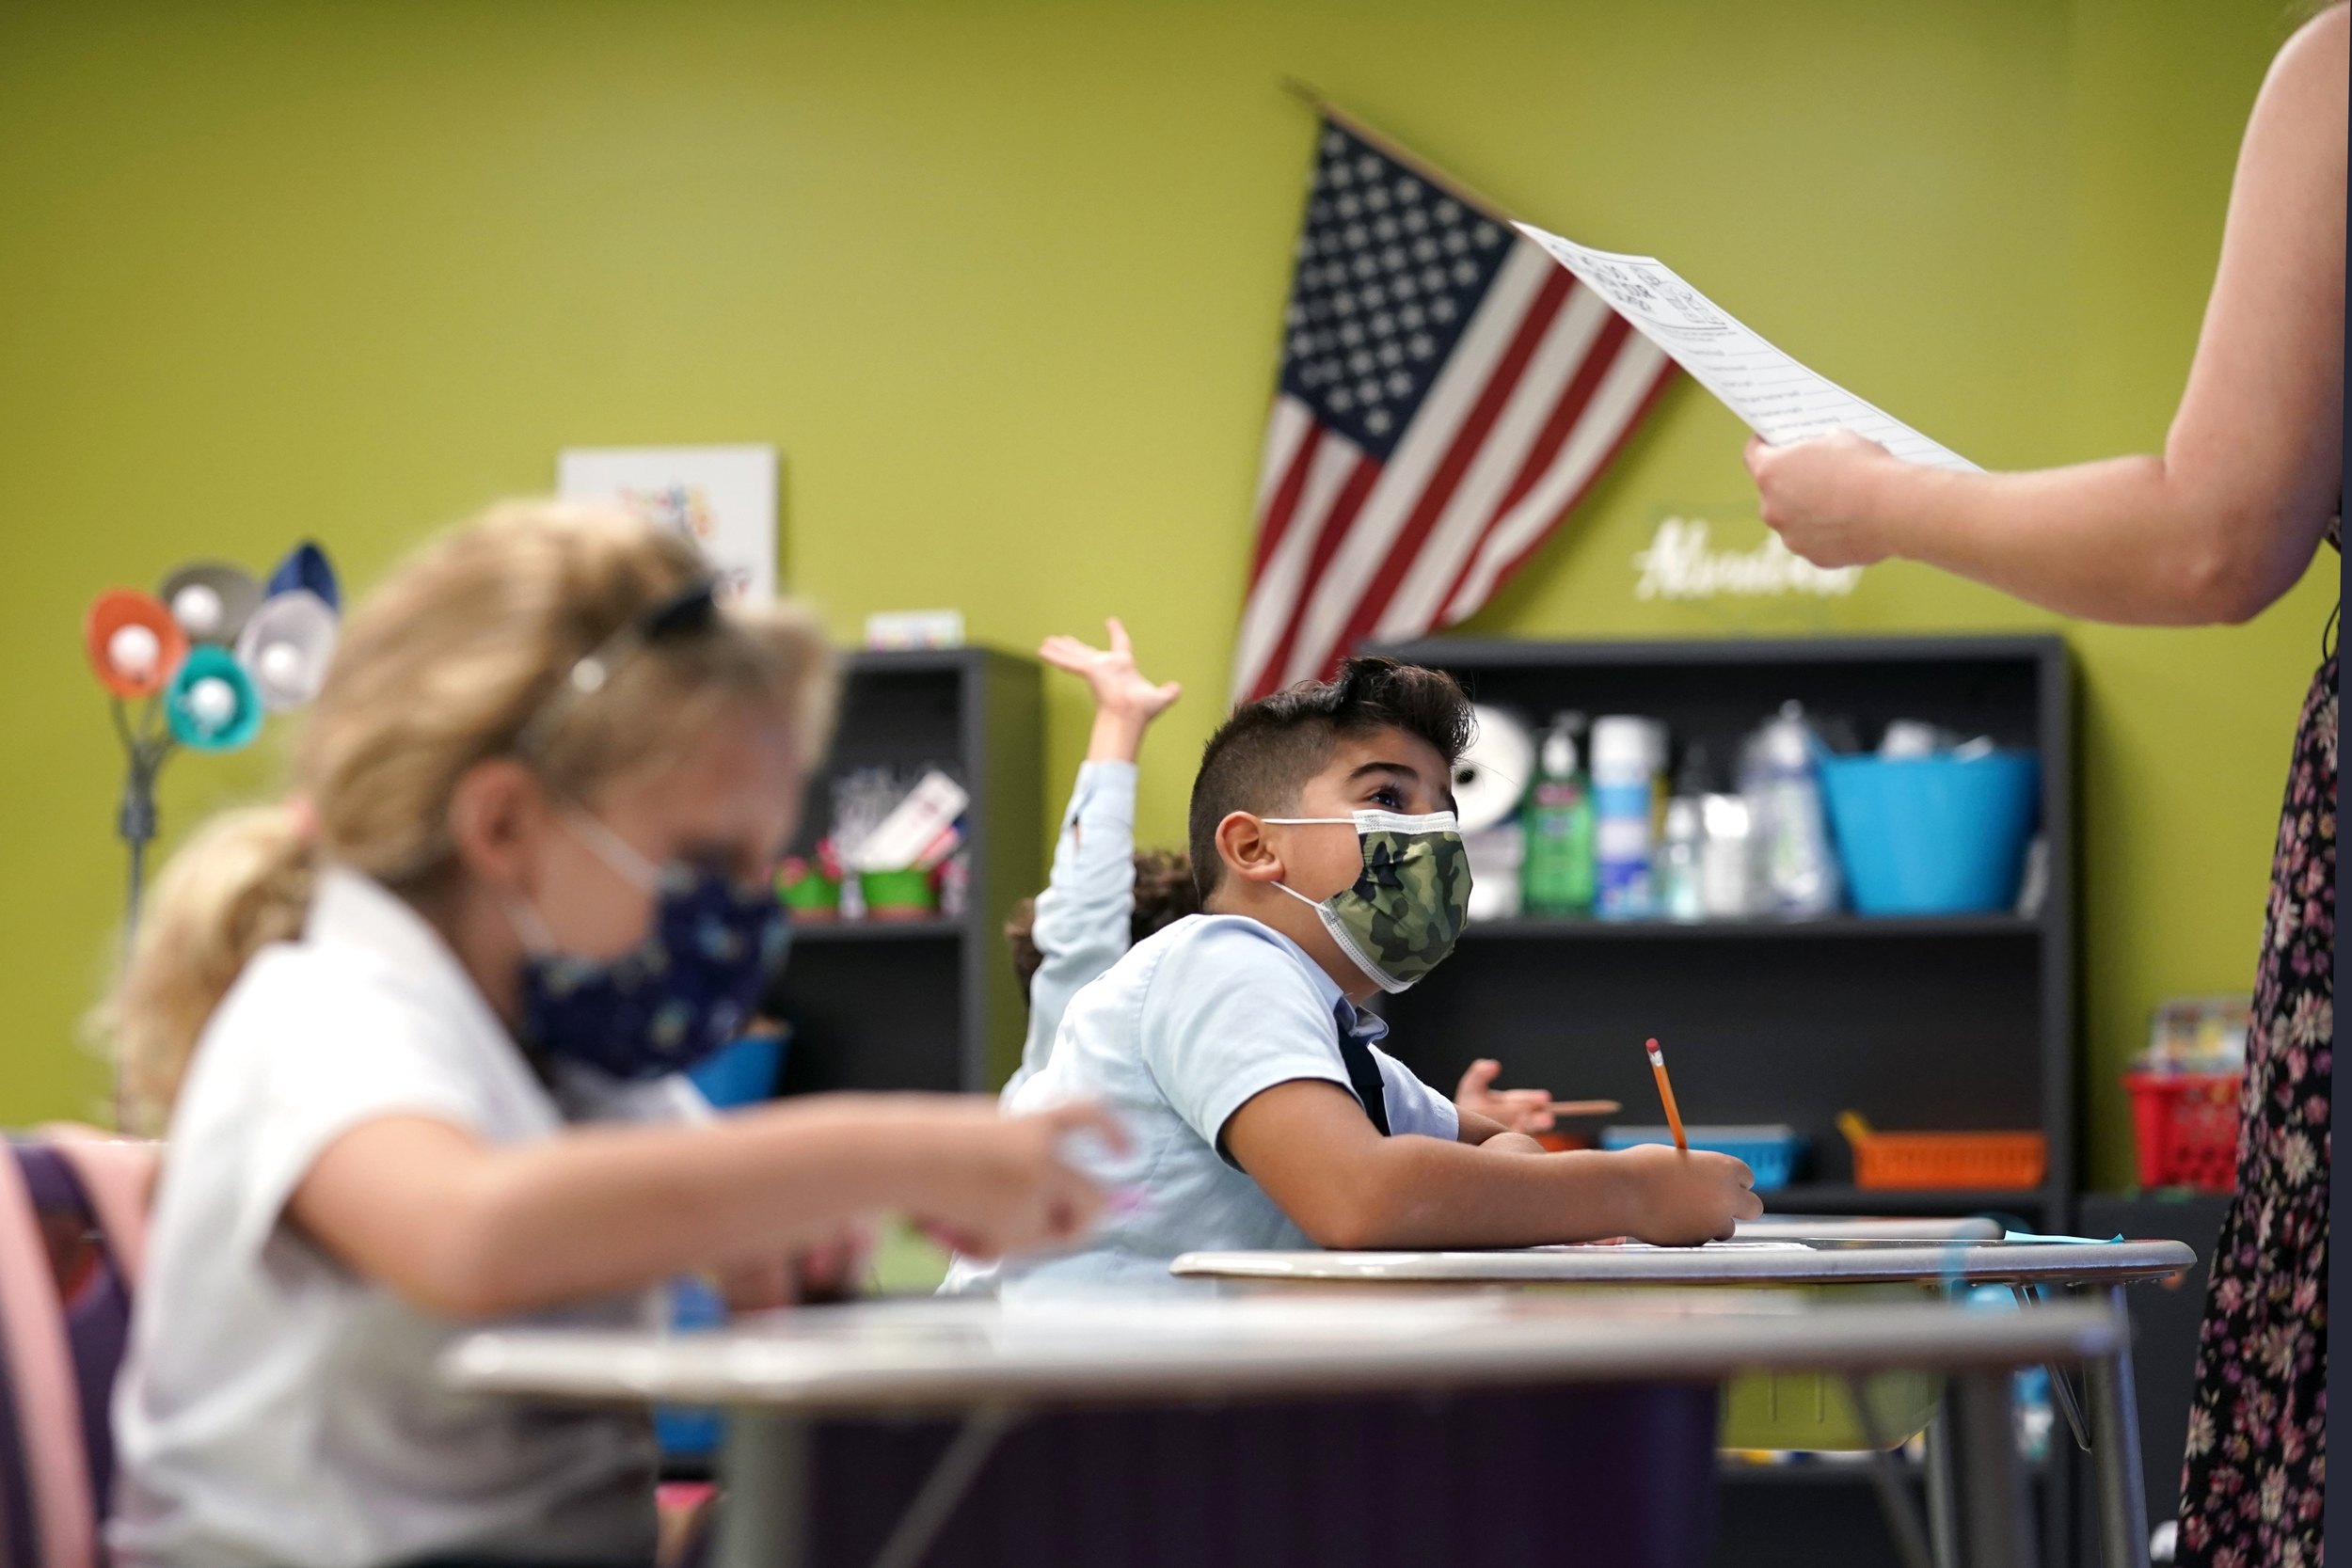 Florida withholds school board salaries over mask mandates